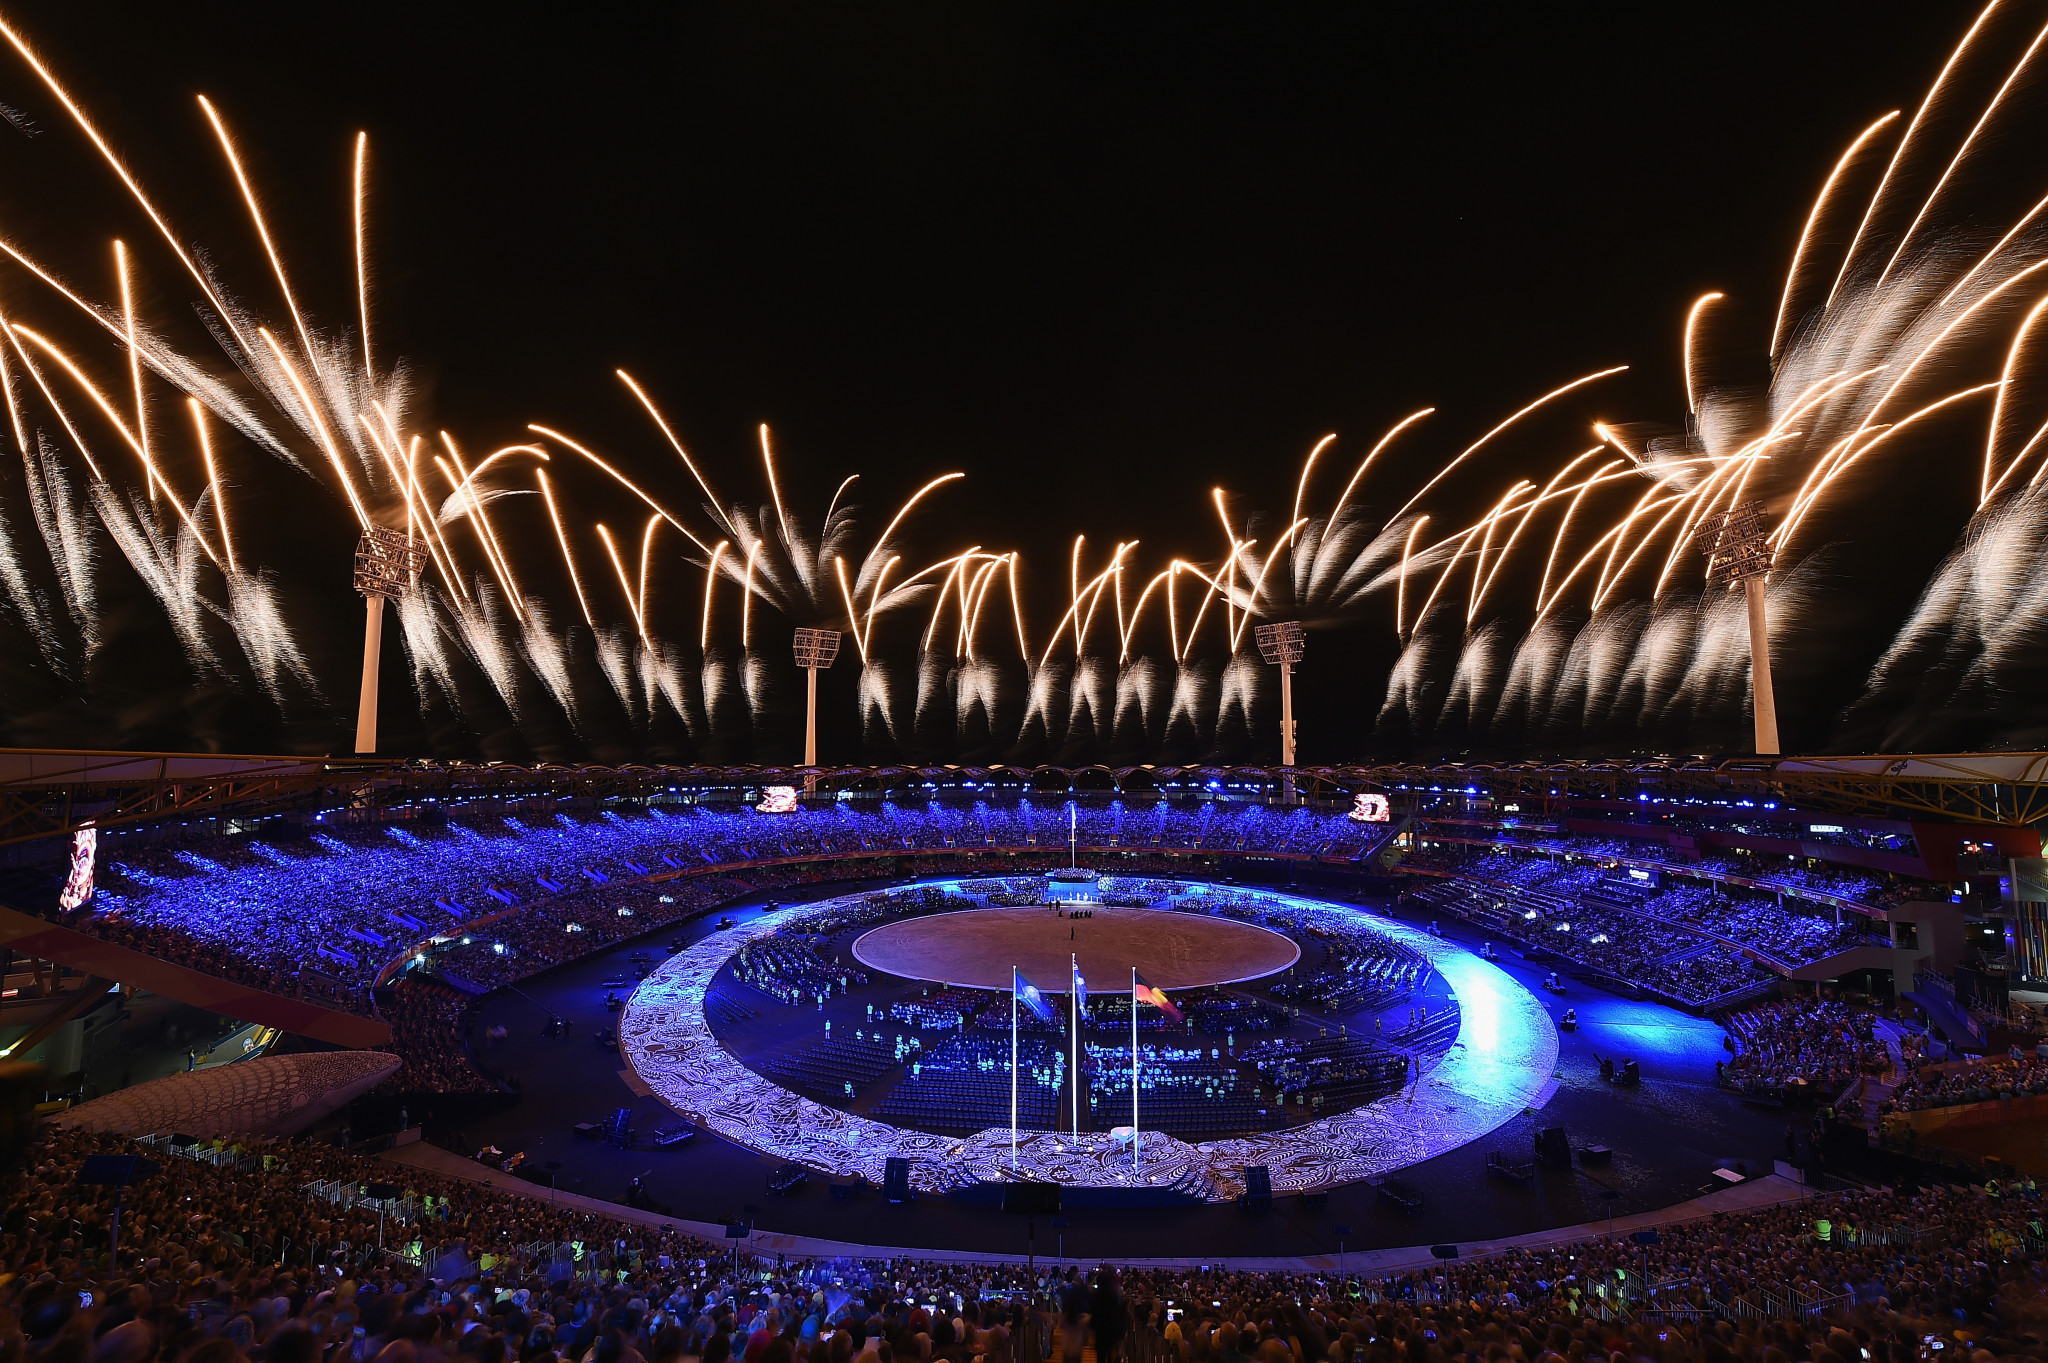 The Commonwealth Games is a huge global event, and is widely known as